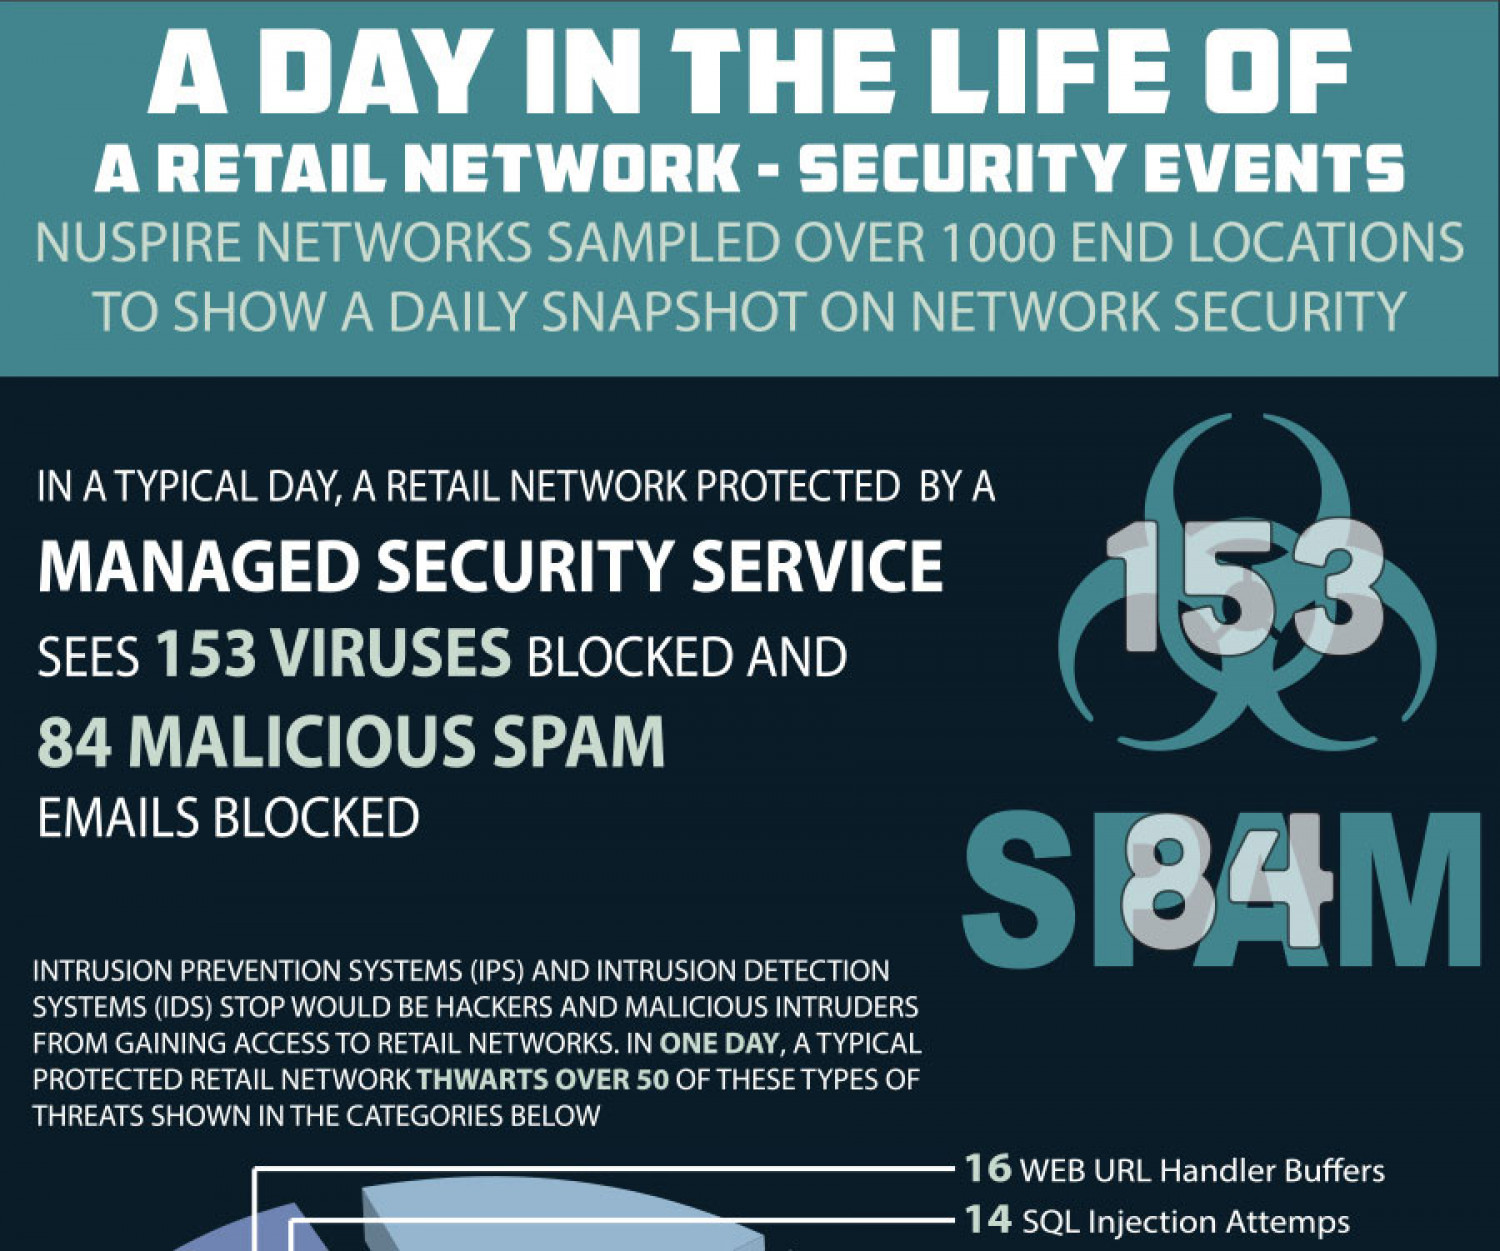 A Day in the Life of a Retail Network Infographic